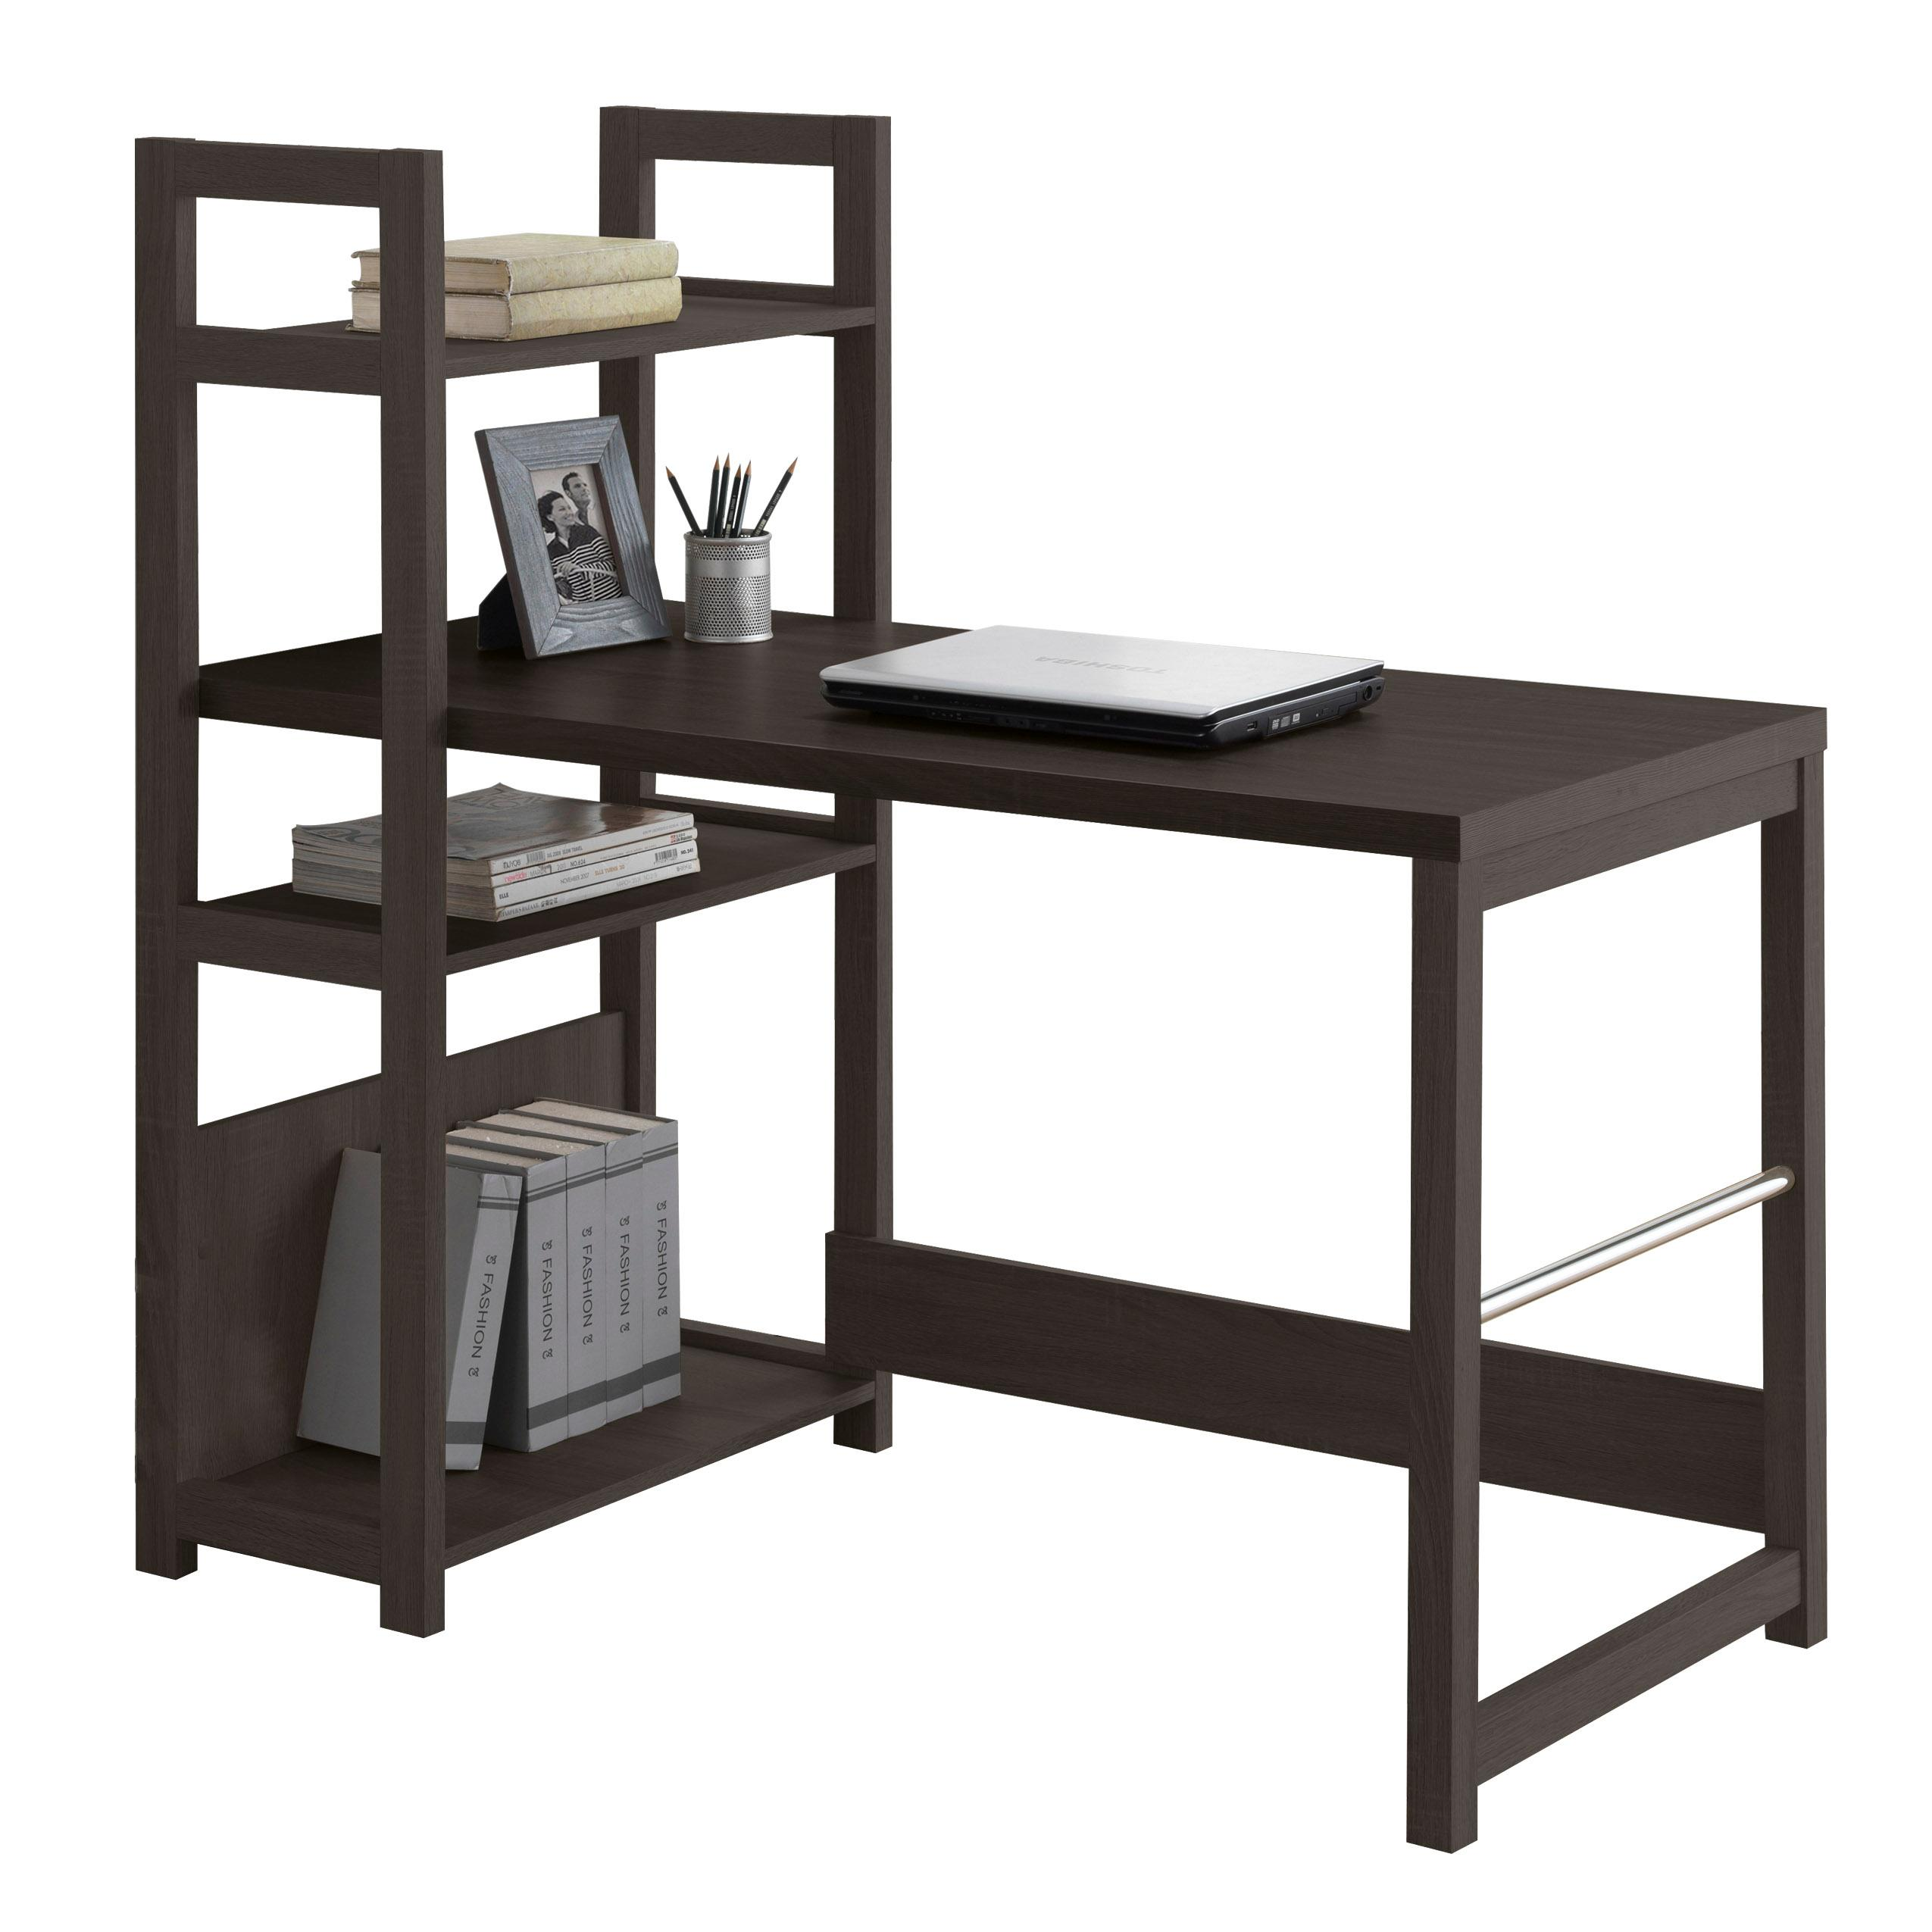 diy info uk bookshelf dorm writing combo shelves bookcase desk for ikea jeanbolen